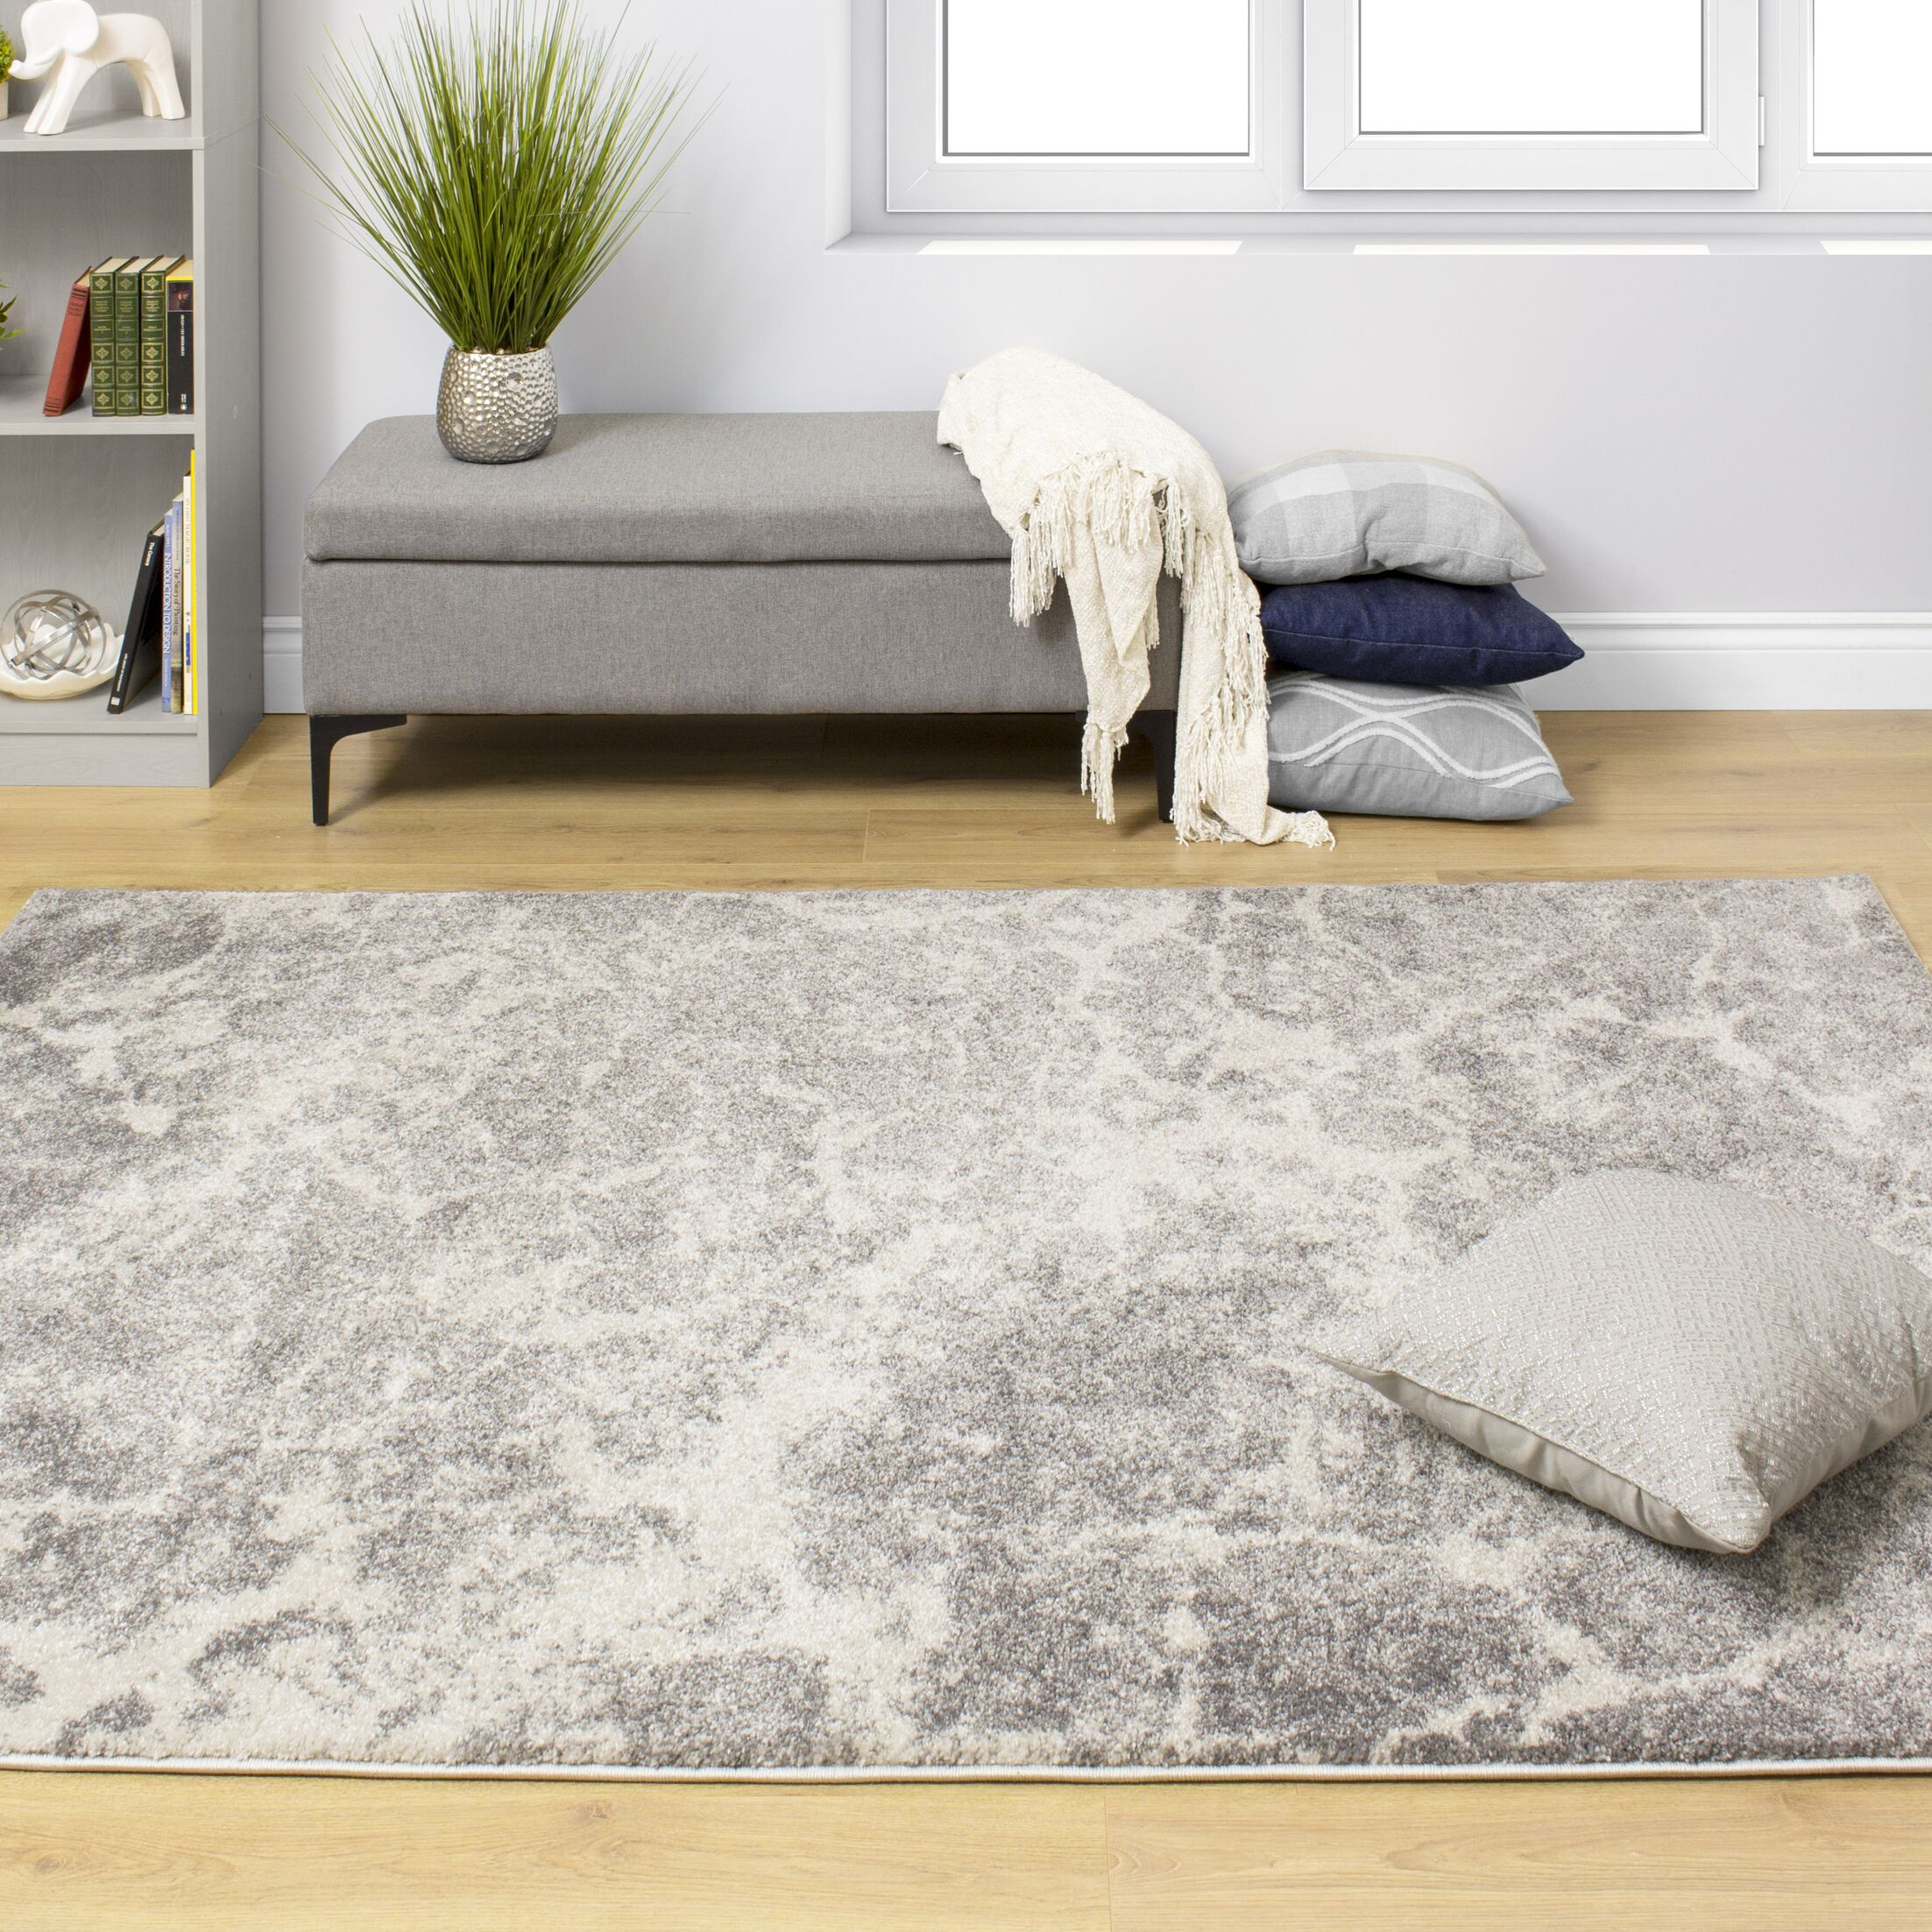 Kate Cloudy Surface Silver Area Rug Rug Size: Rectangle 7'10'' x 10'6''